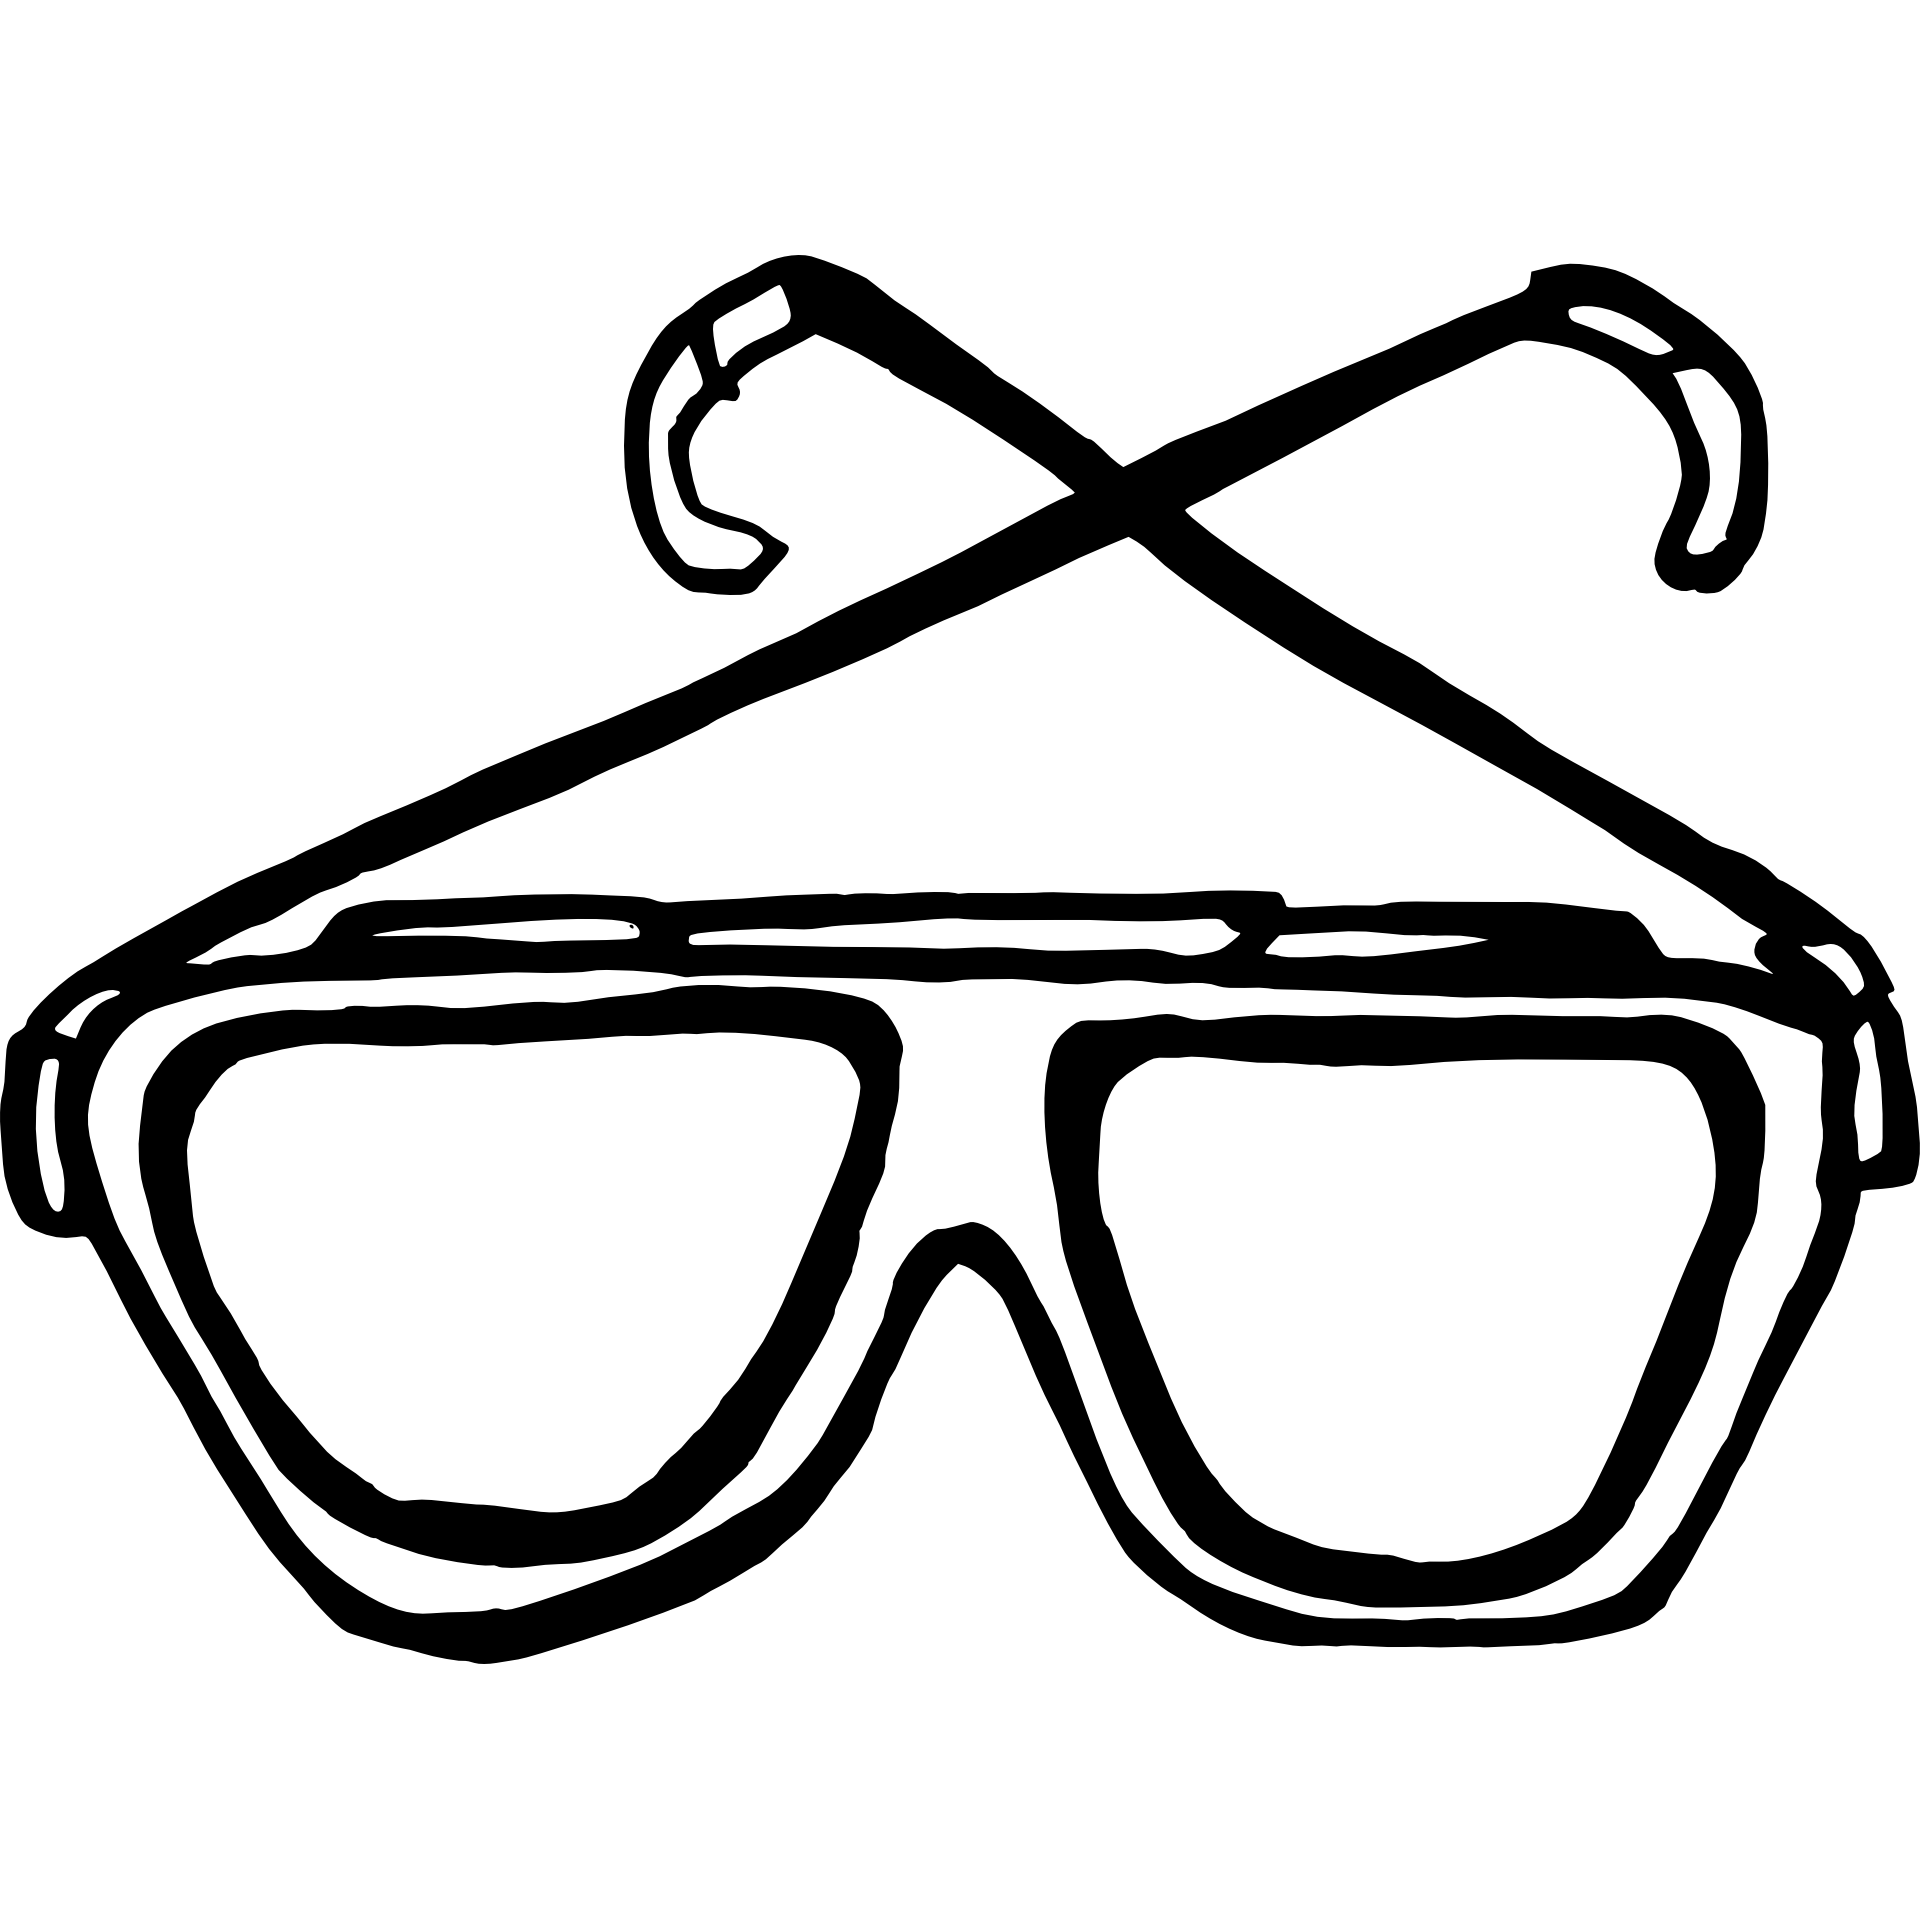 clipart sunglasses spectacle frame